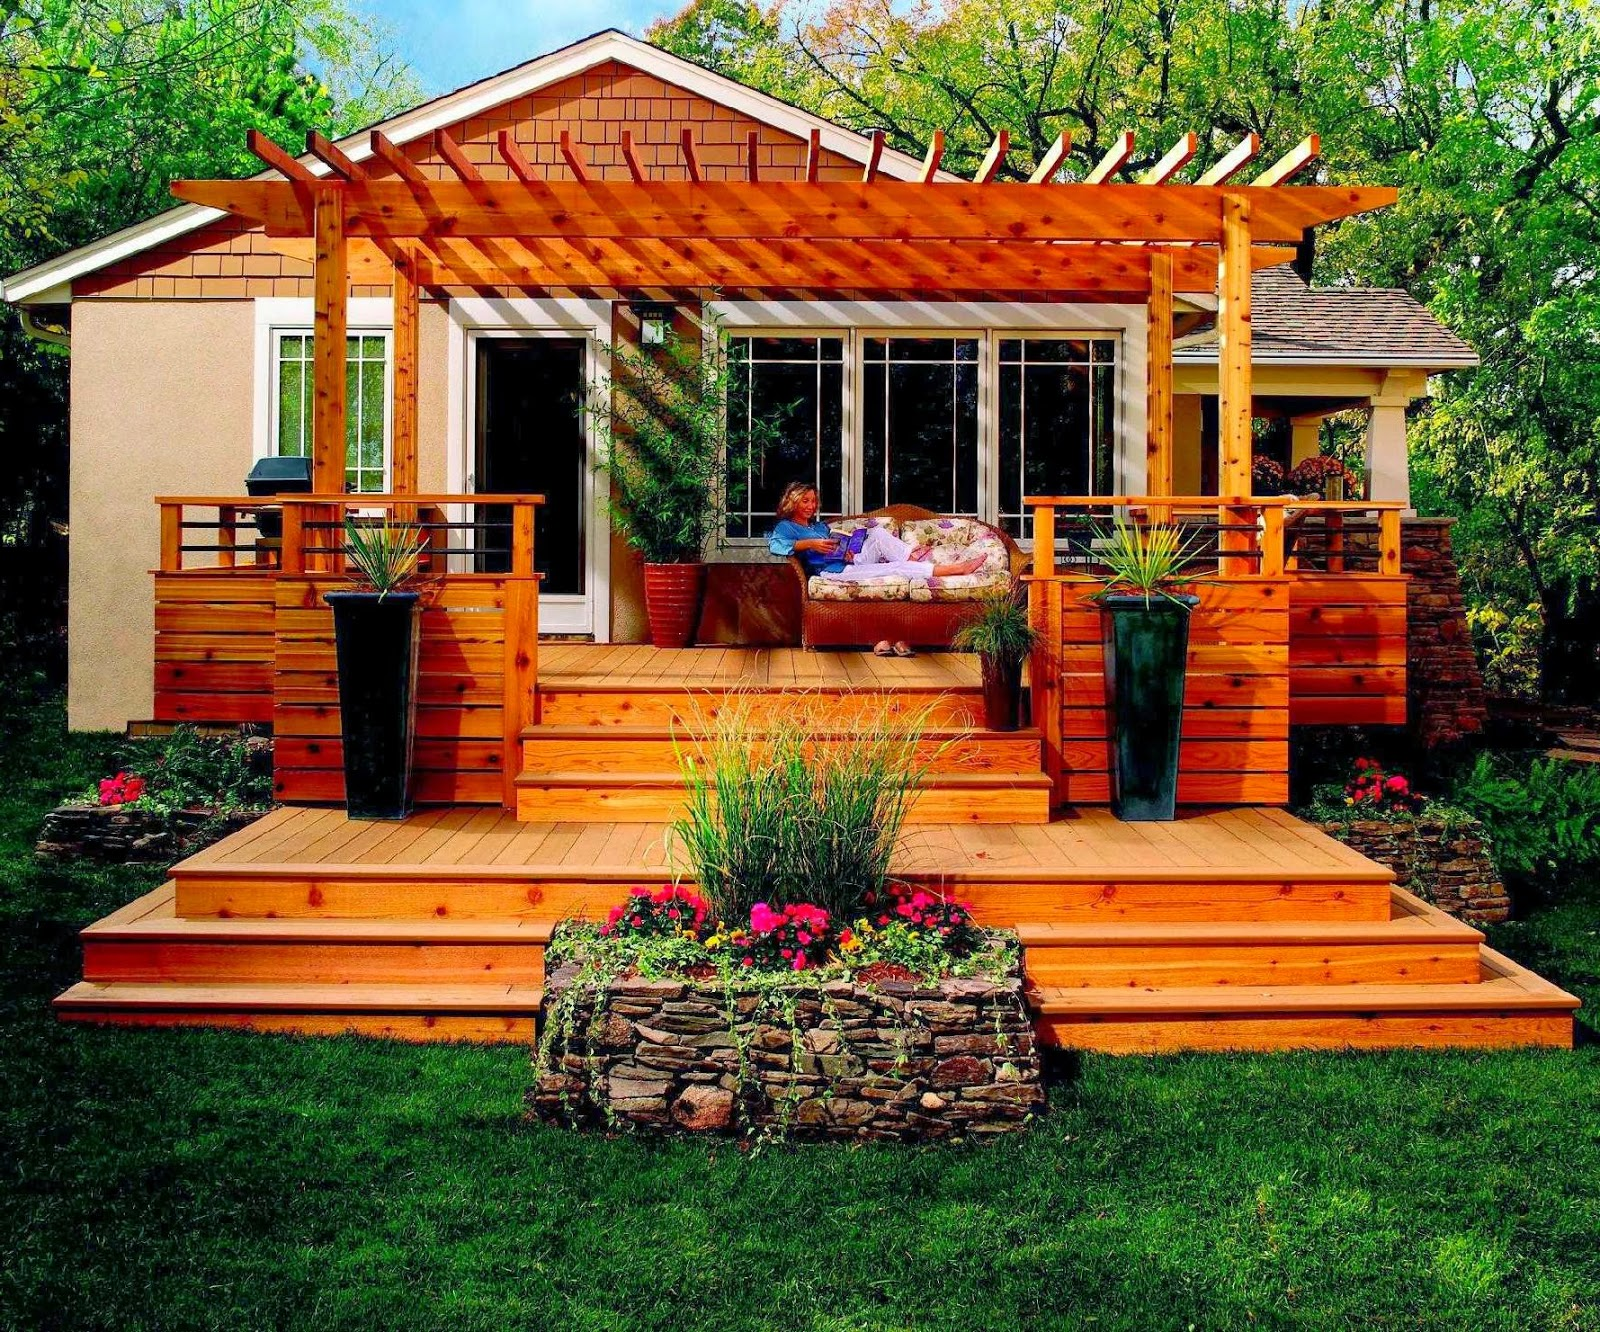 Designs Of Backyard Decks : Awesome backyard deck design  Backyard Design Ideas